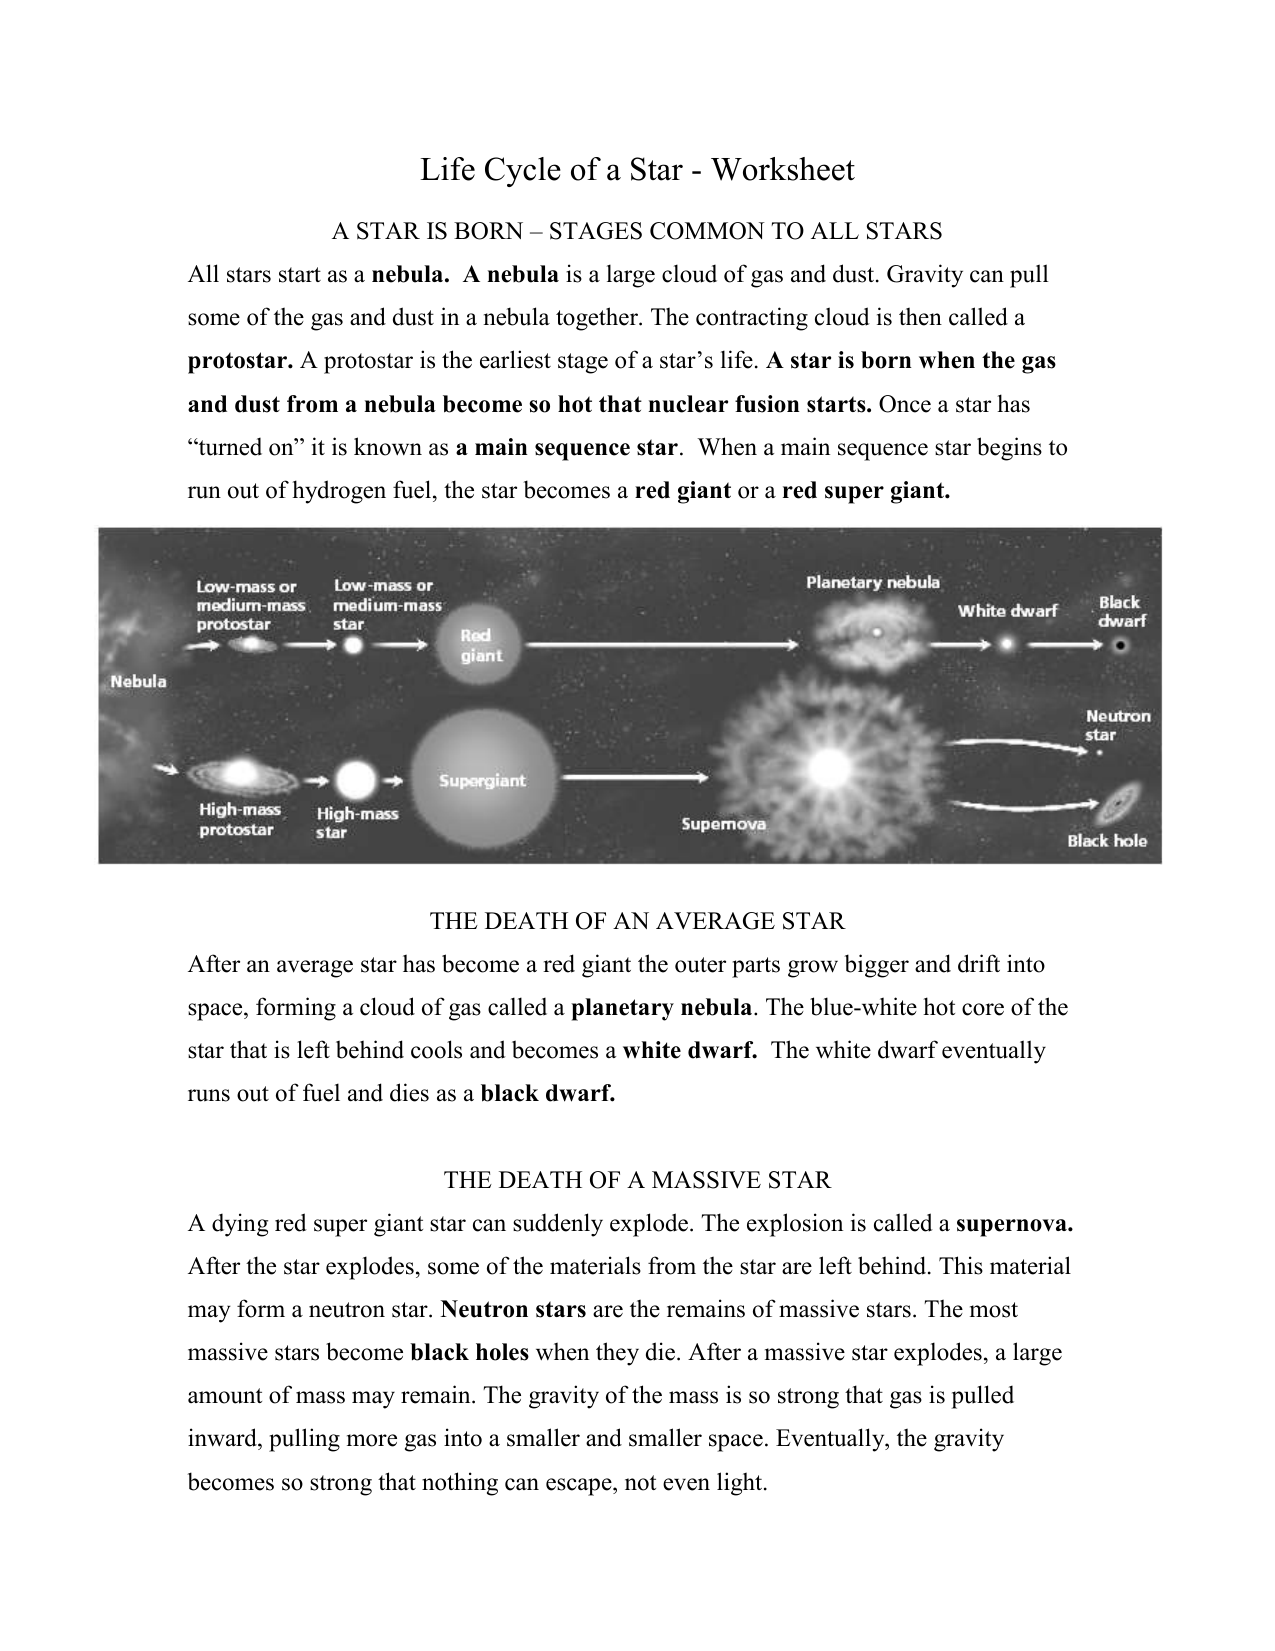 Life Cycle of a Star   Intervention Worksheet together with 15 Best Images of Star Formation Worksheet   Star Stellar Evolution likewise Stellar Evolution Lab   The Life Cycle Of A Star Worksheet printable together with Life cycle of stars by   UK Teaching Resources   TES in addition  also Star Life Cycle   Earth Science Worksheet printable pdf download moreover Life Cycle Of A Star Worksheet Answers   Free Printables Worksheet also Collection of Life cycle of a star worksheet   Download them and try together with Life Cycle Of A Star Worksheets furthermore Accounting Life Cycle Of A Star Worksheet Worksheets Solar Eclipse furthermore  furthermore Life Cycle of Stars Worksheet  Word Search by Science Spot   TpT moreover what is a life cycle – asasas club likewise simple machines activities  Life Cycle Of A Star Worksheet For Kids as well Life of a Star by a ding   Teaching Resources additionally . on life of a star worksheet